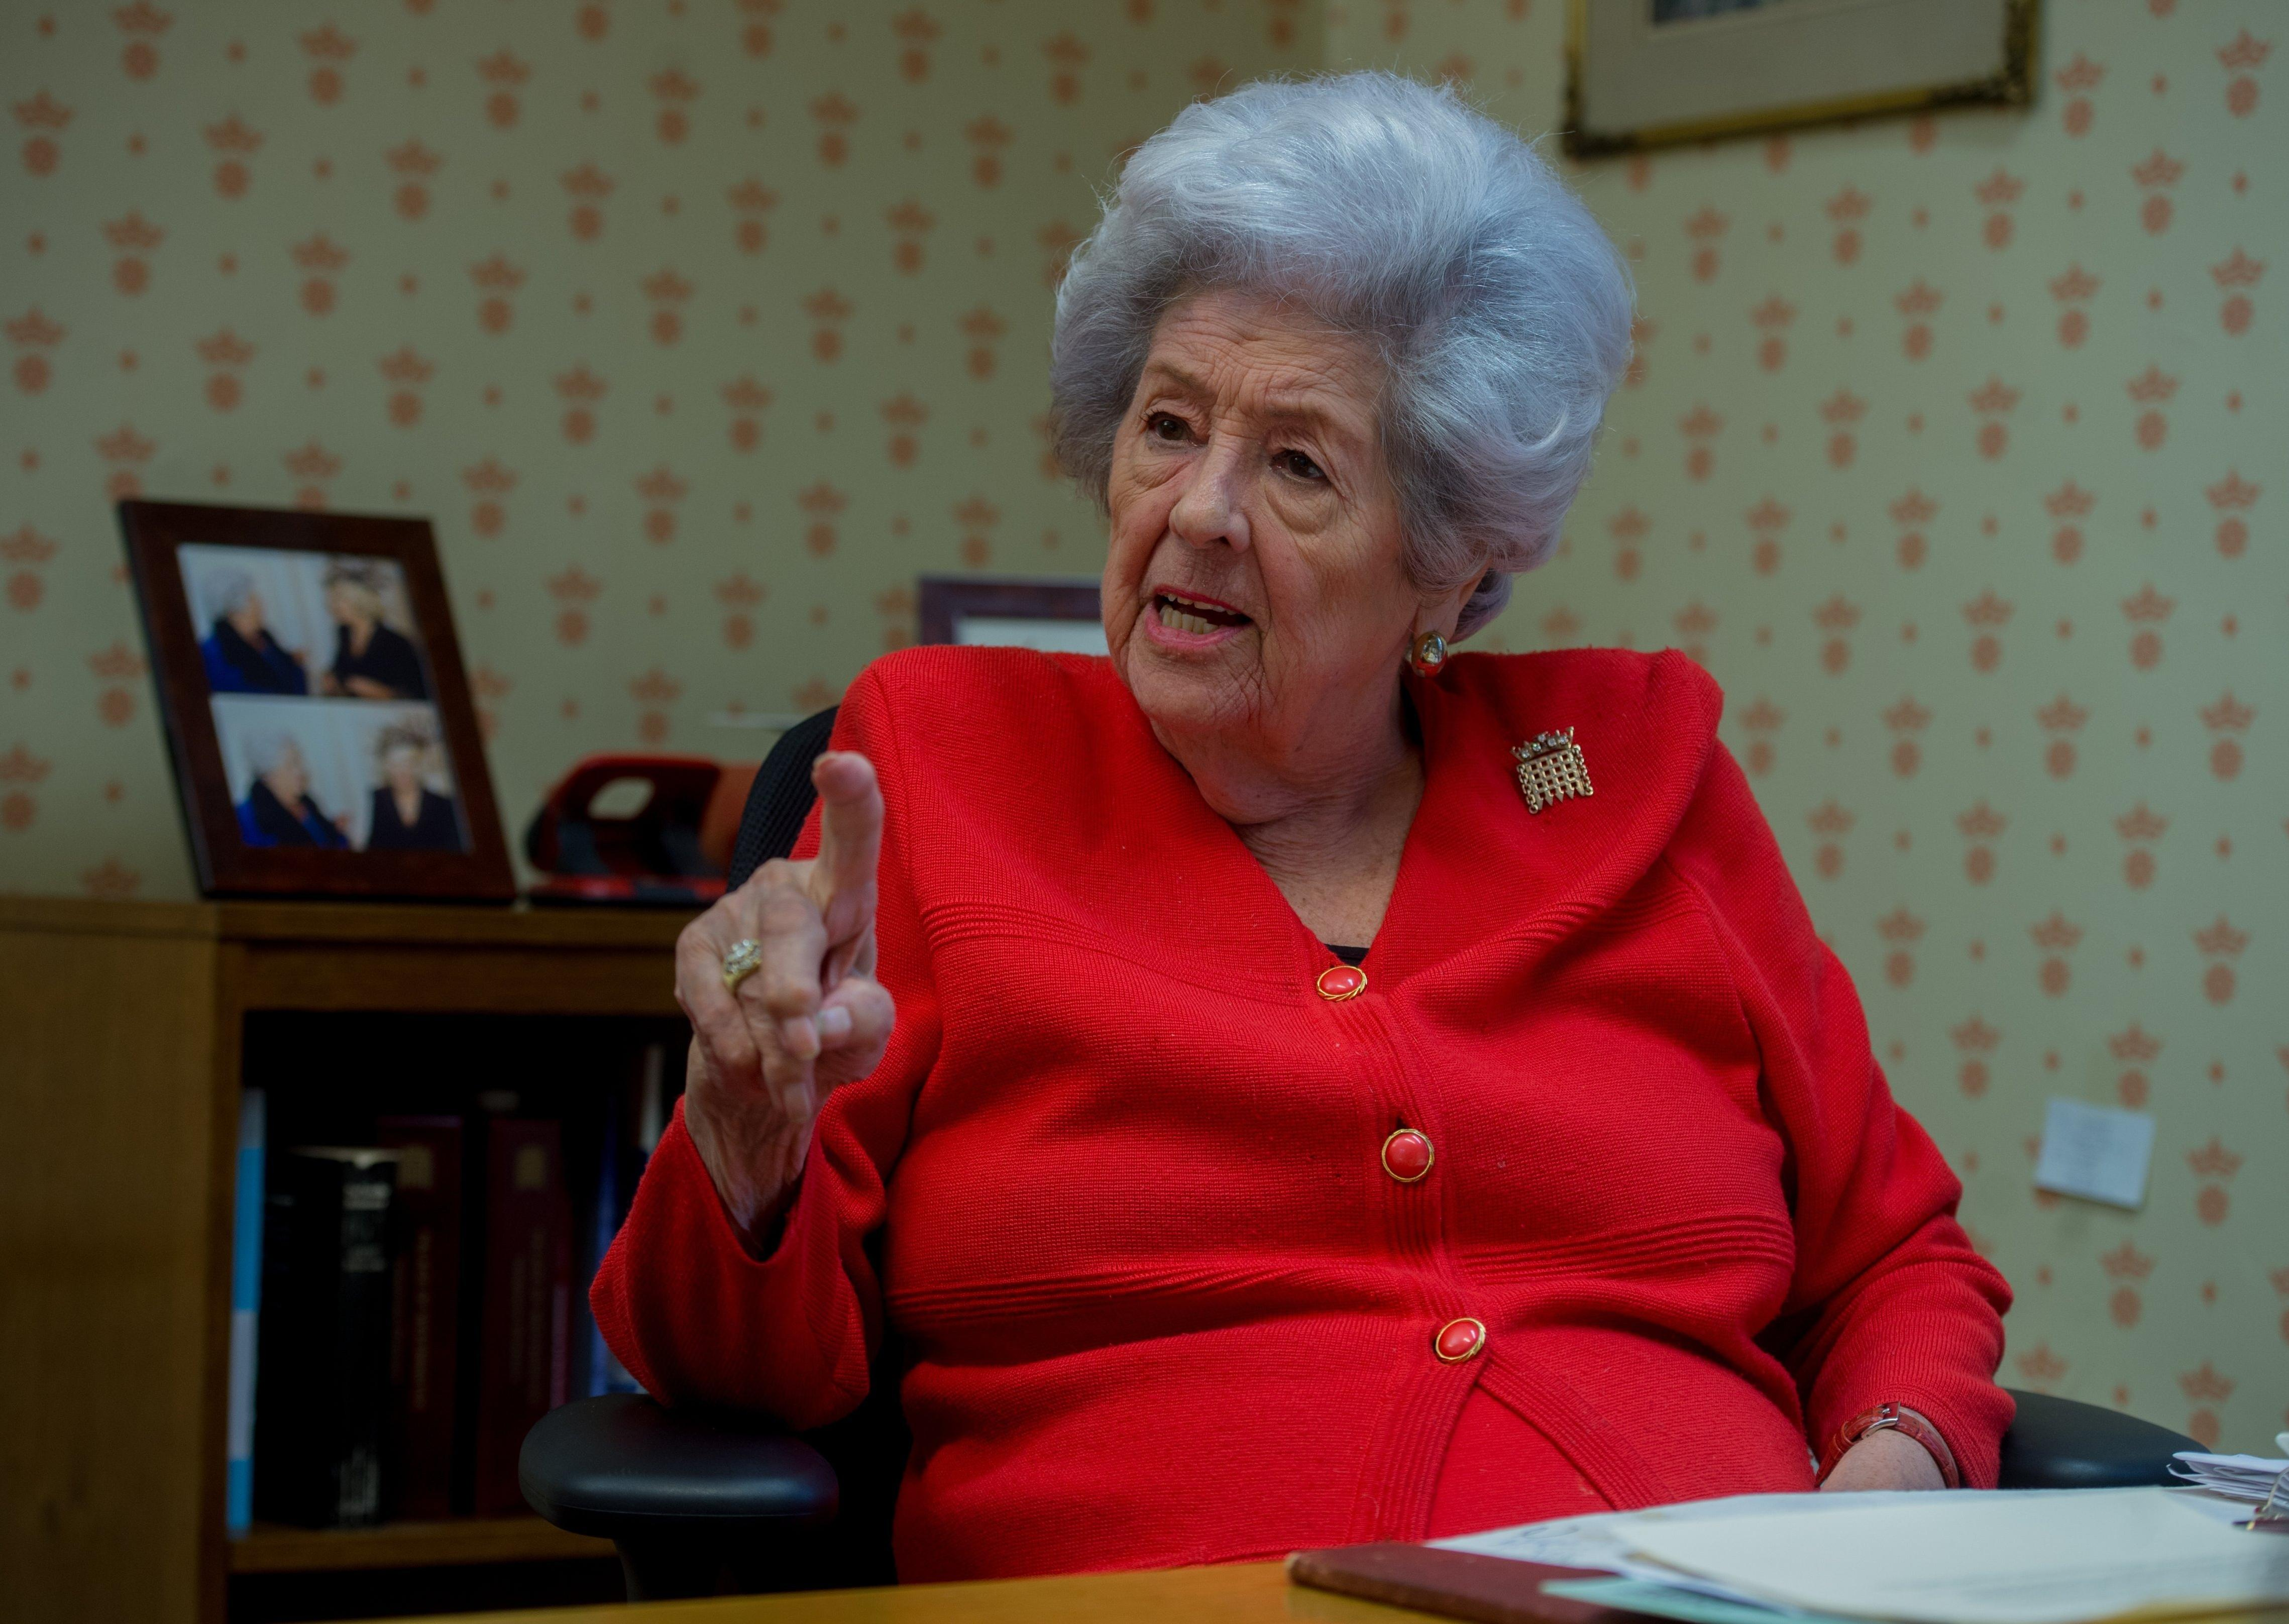 Betty Boothroyd's Yorkshire Day solidarity with current Speaker – Tom Richmond